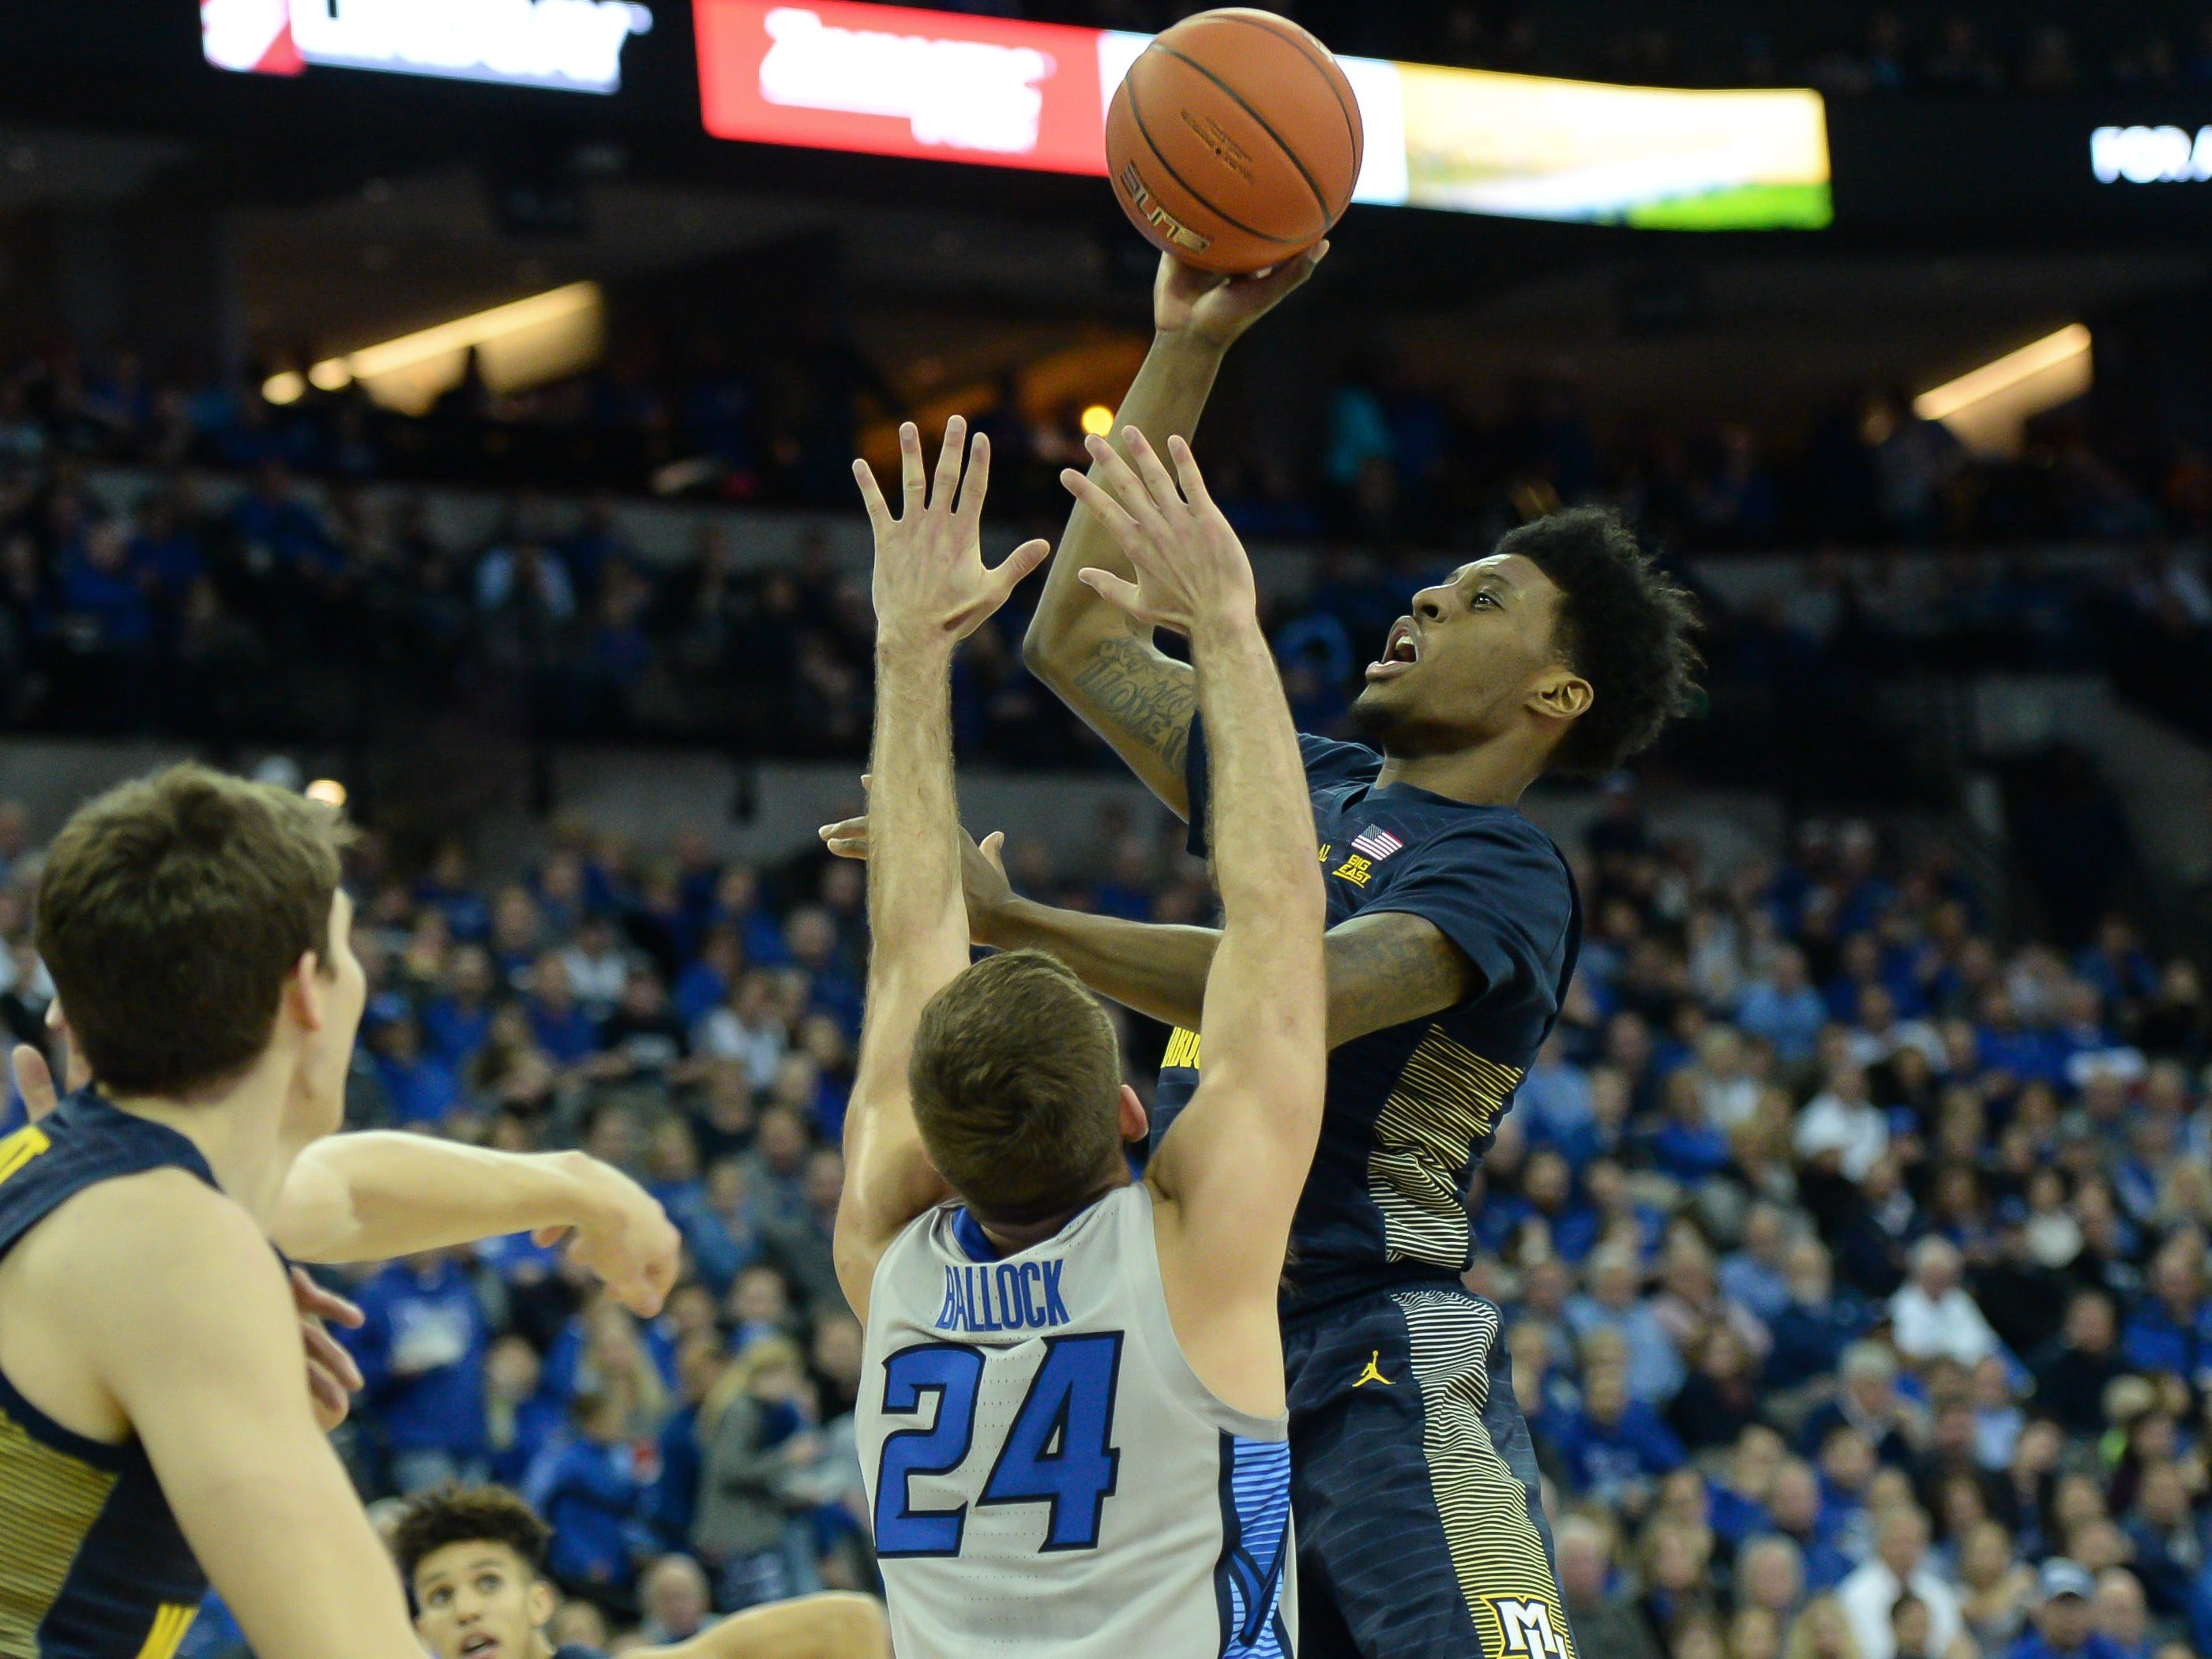 Marquette forward Sacar Anim goes up for a shot in the lane while being guarded by Creighton guard Mitch Ballock in the first half Wednesday.